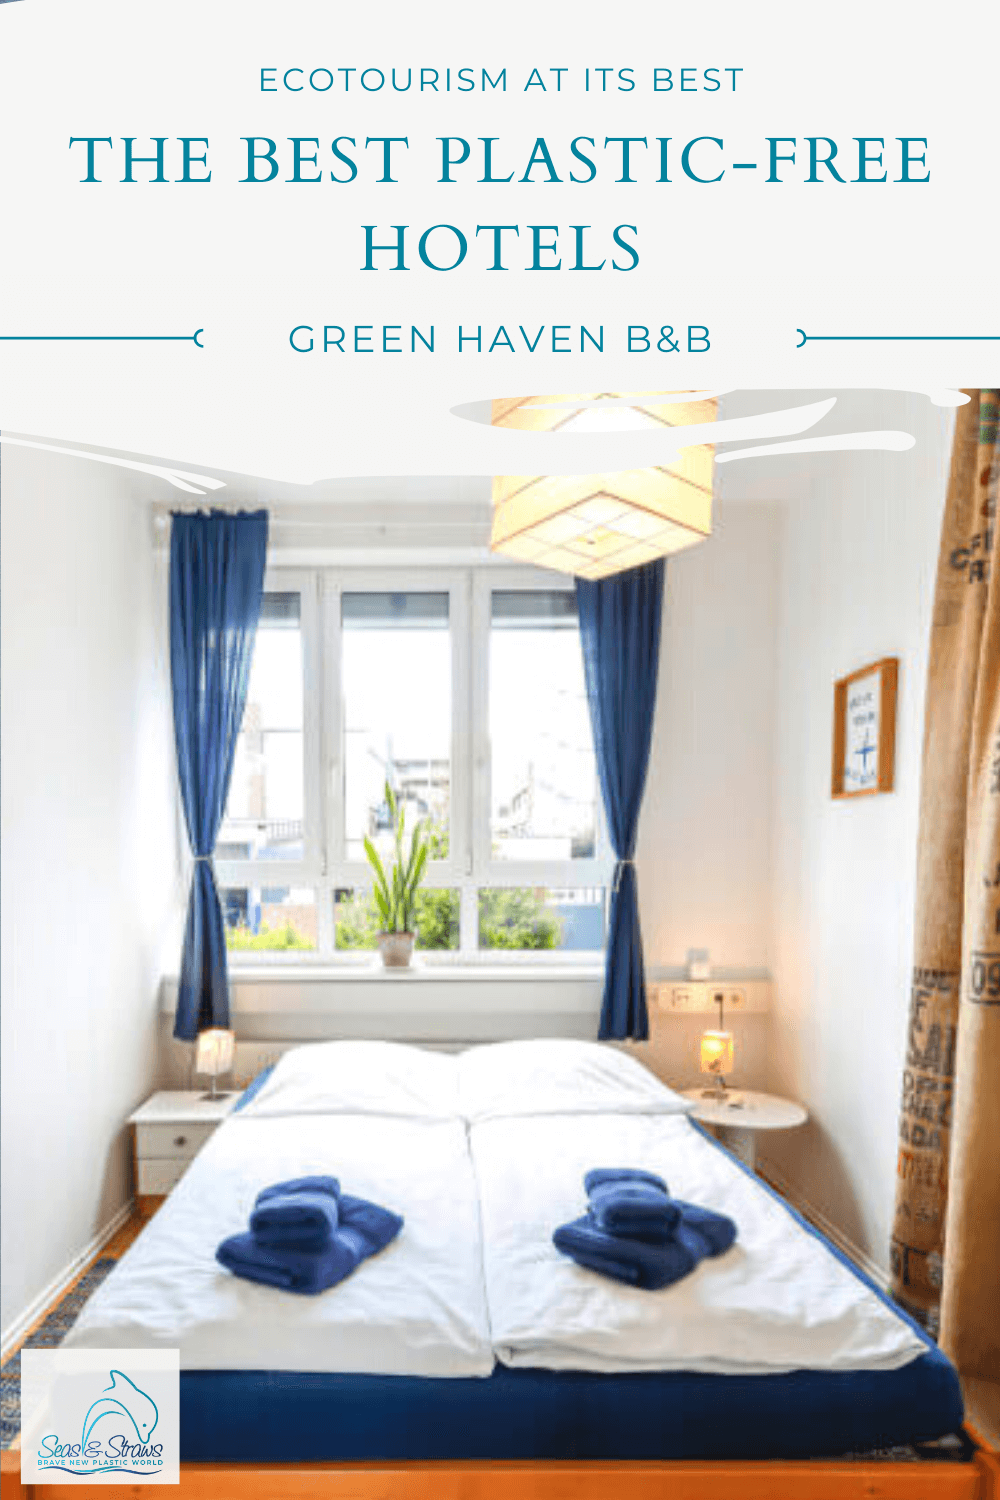 The best Plastic-free hotels - The Green Haven